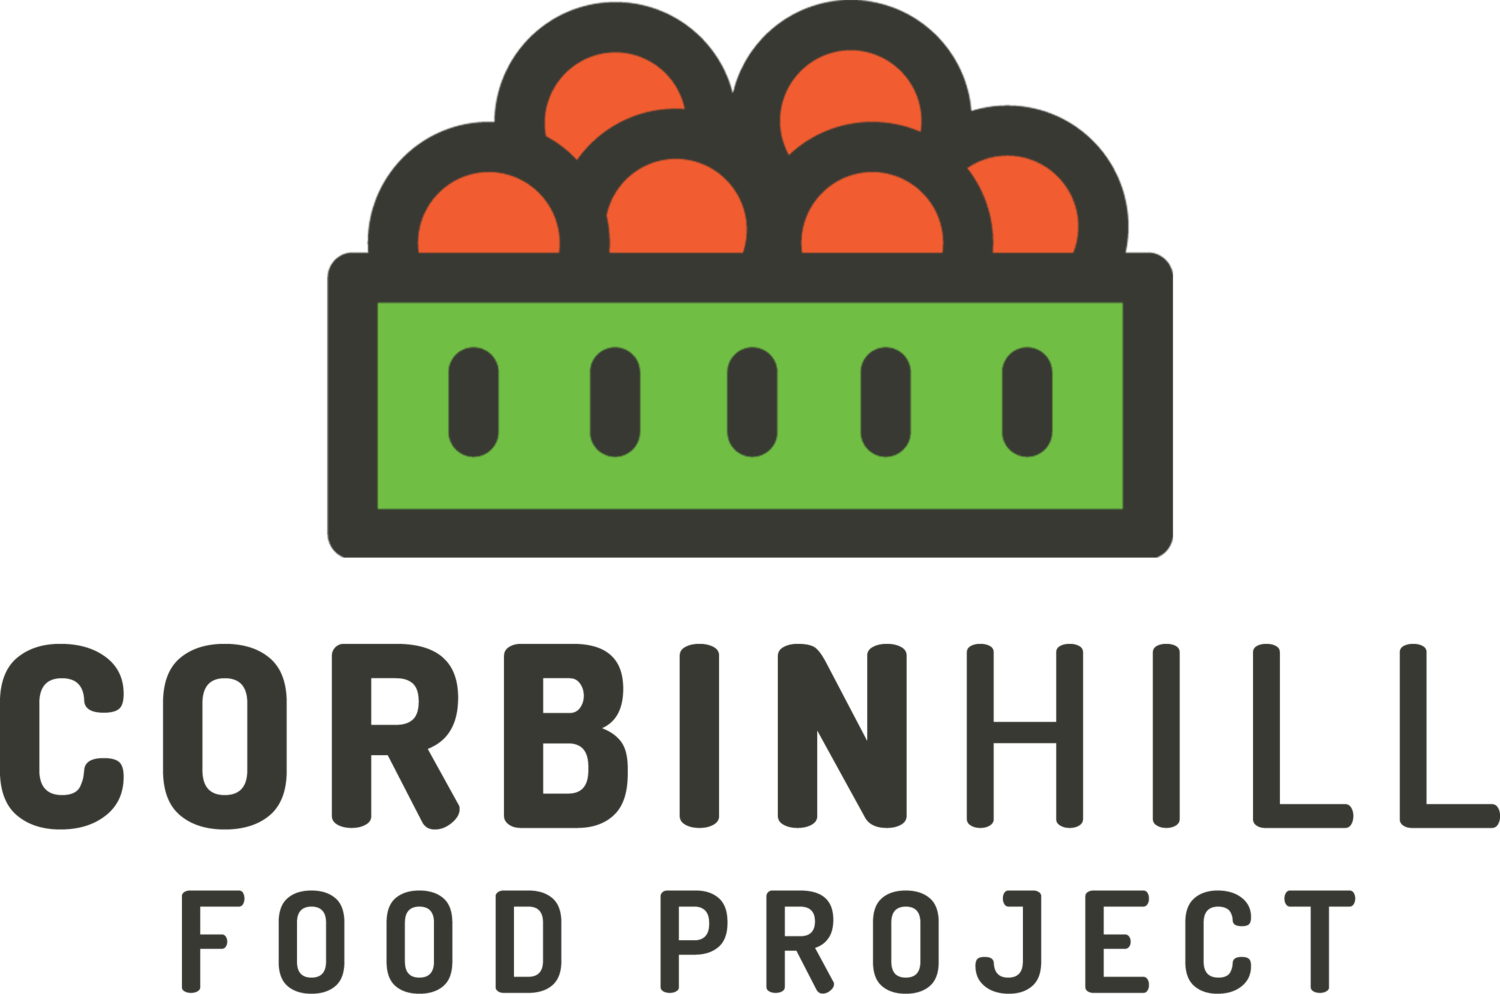 Corbin Hill Food Project